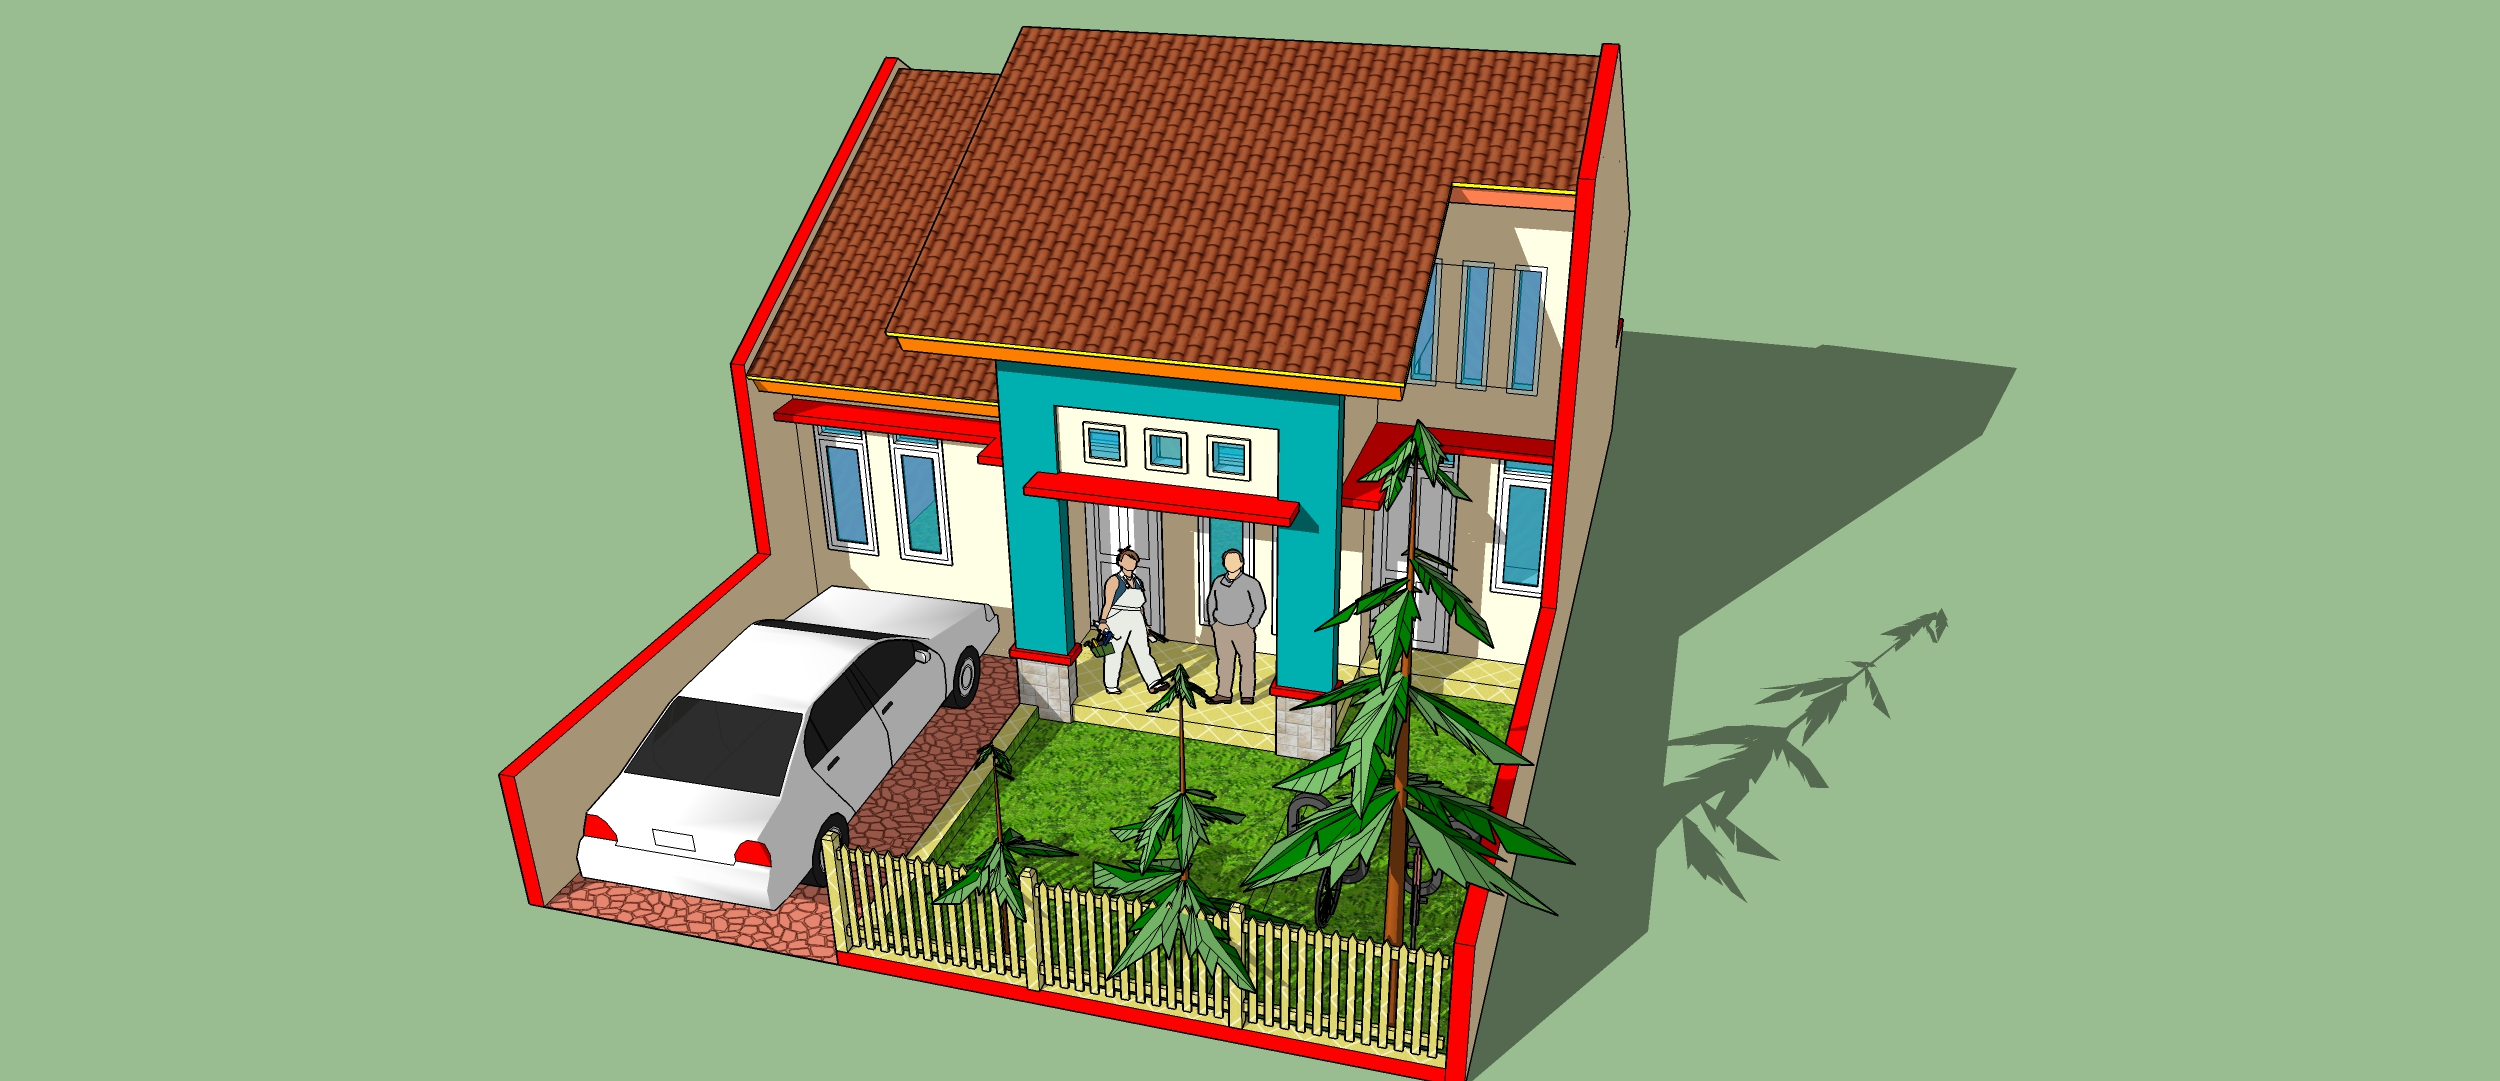 Sketchup Tutorial Making A Minimalist One Floor Home Whaleshares